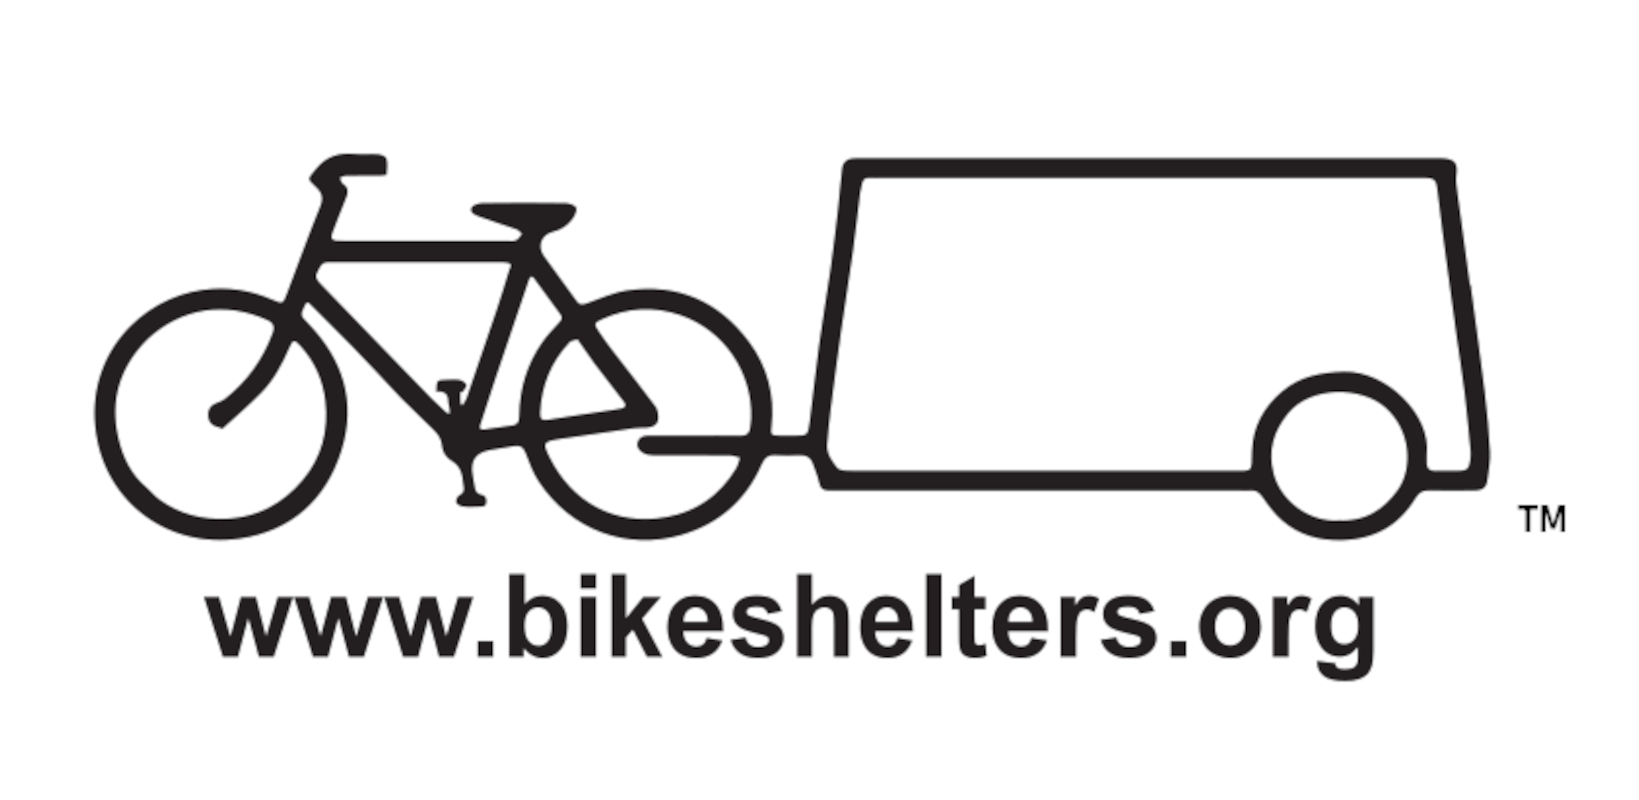 bike-shelters-hi-res-png-logo.png